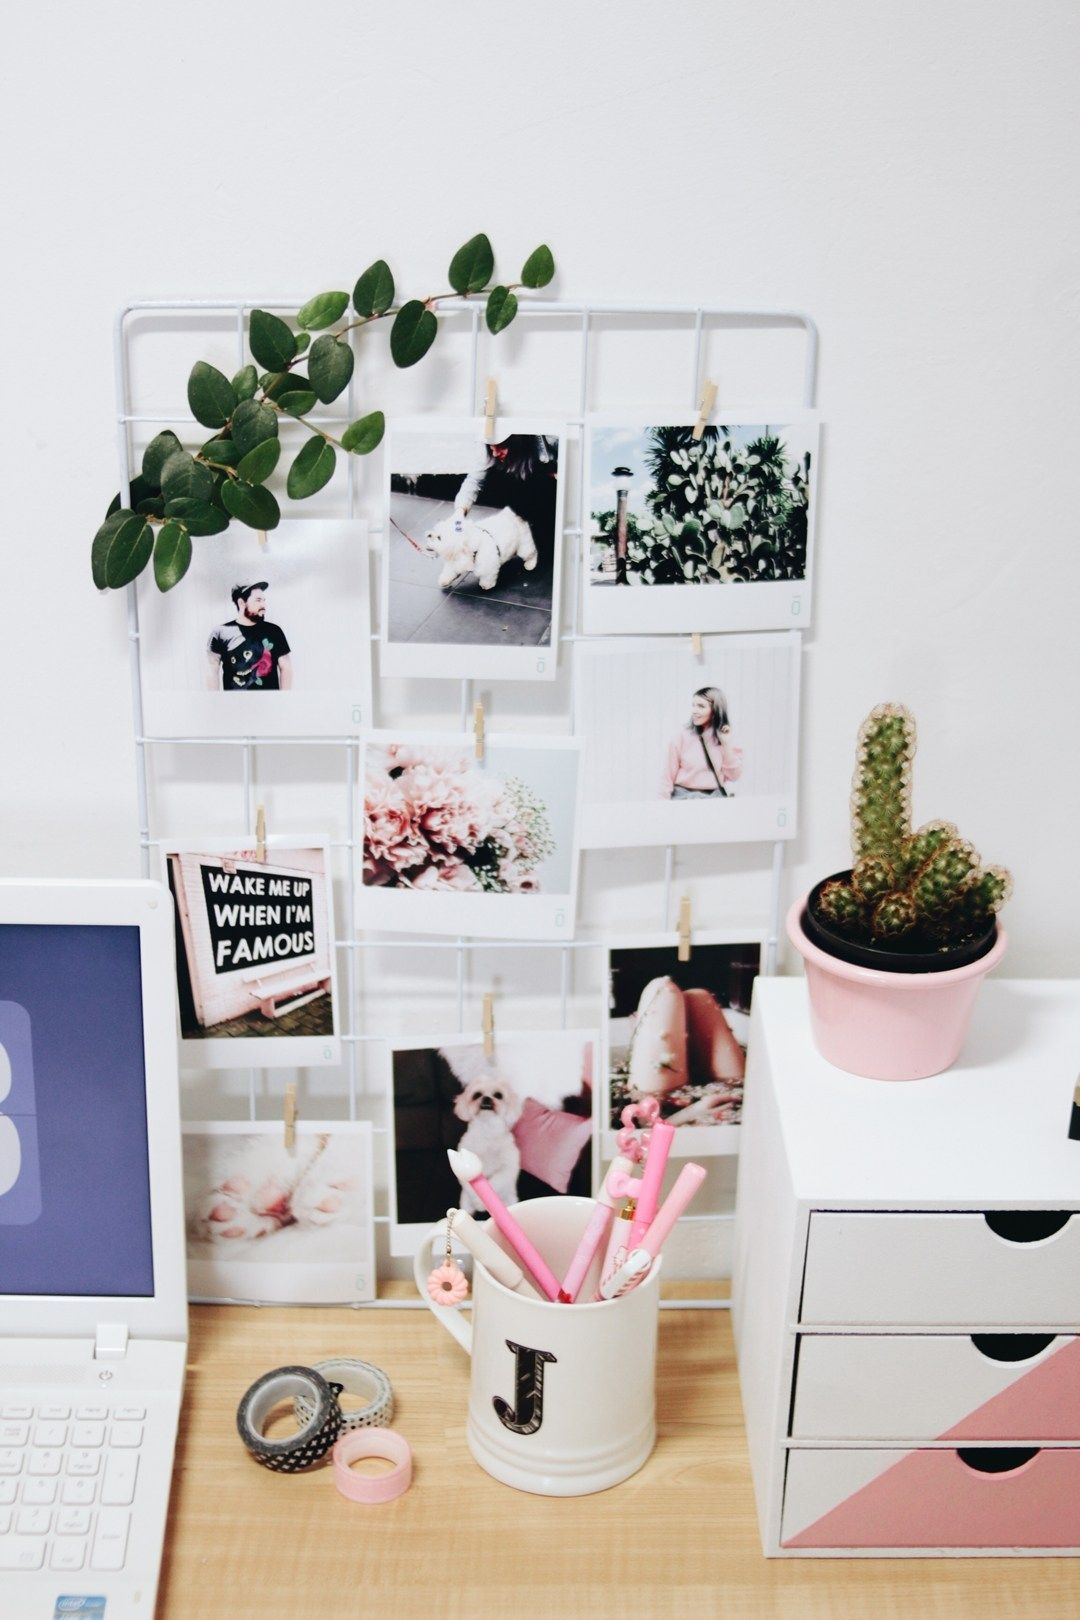 7e5e8cc92de96 Salon, Polaroid Decoration, Polaroid Display, Home Office Bedroom, Home  Office Decor,